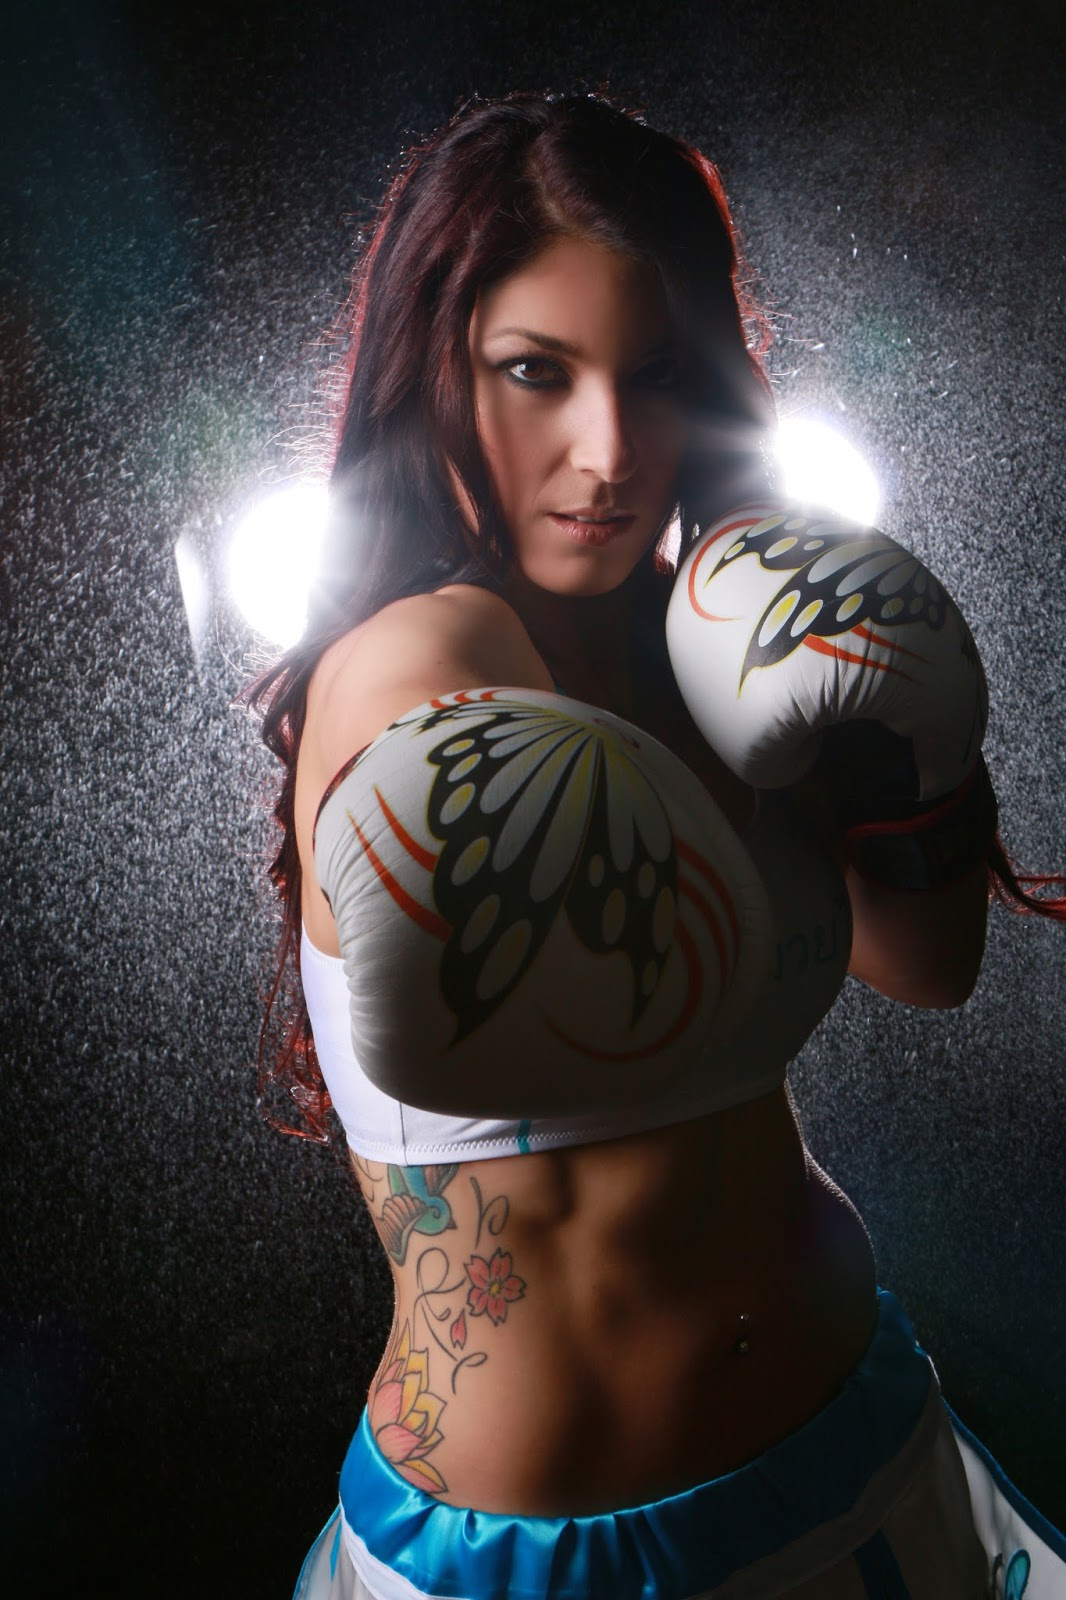 Nude Fighter Babes 73